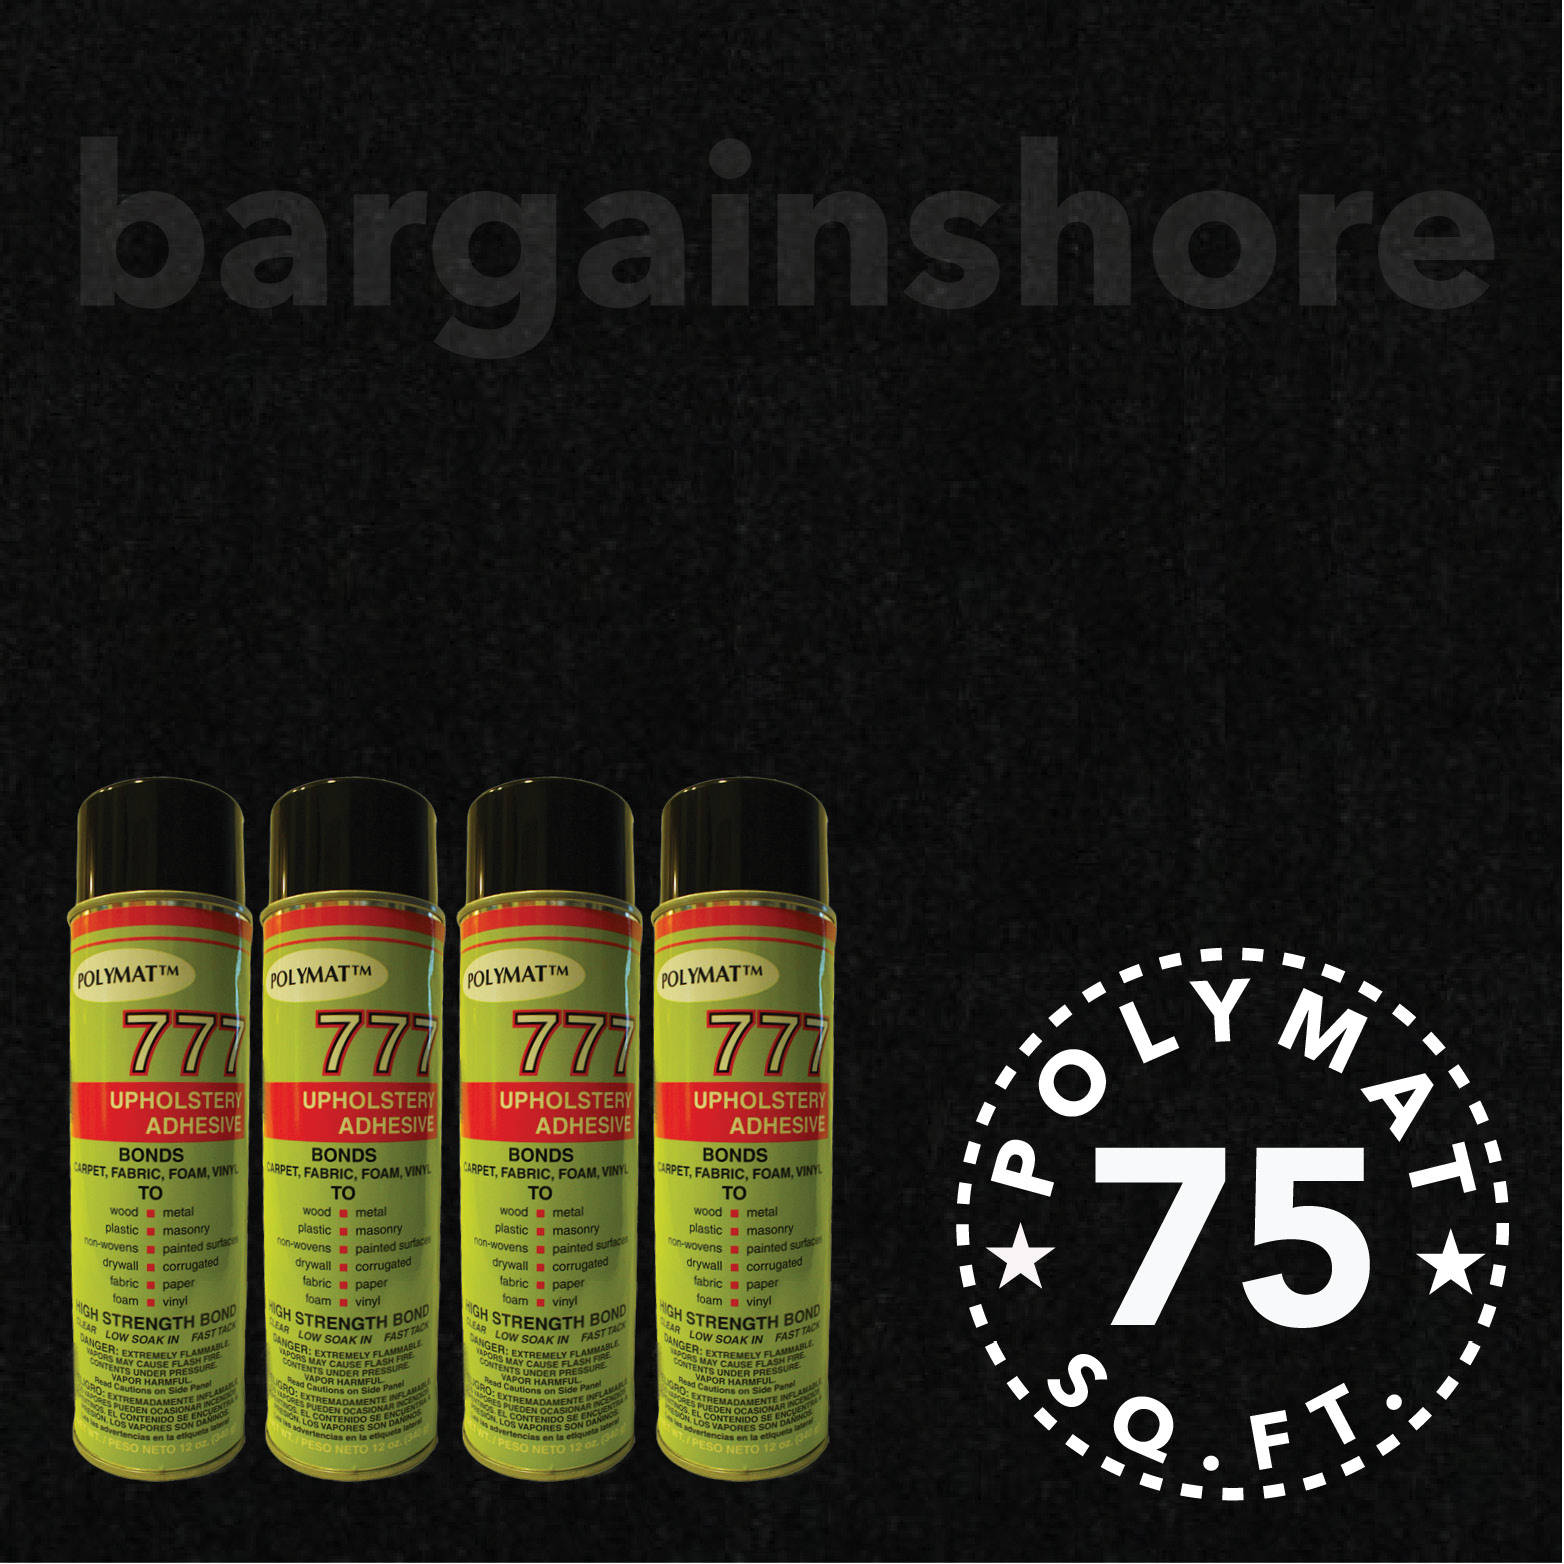 20ft x 3.75ft + 4 (777) GLUE ADHESIVE CANS BLACK FOR STOR...